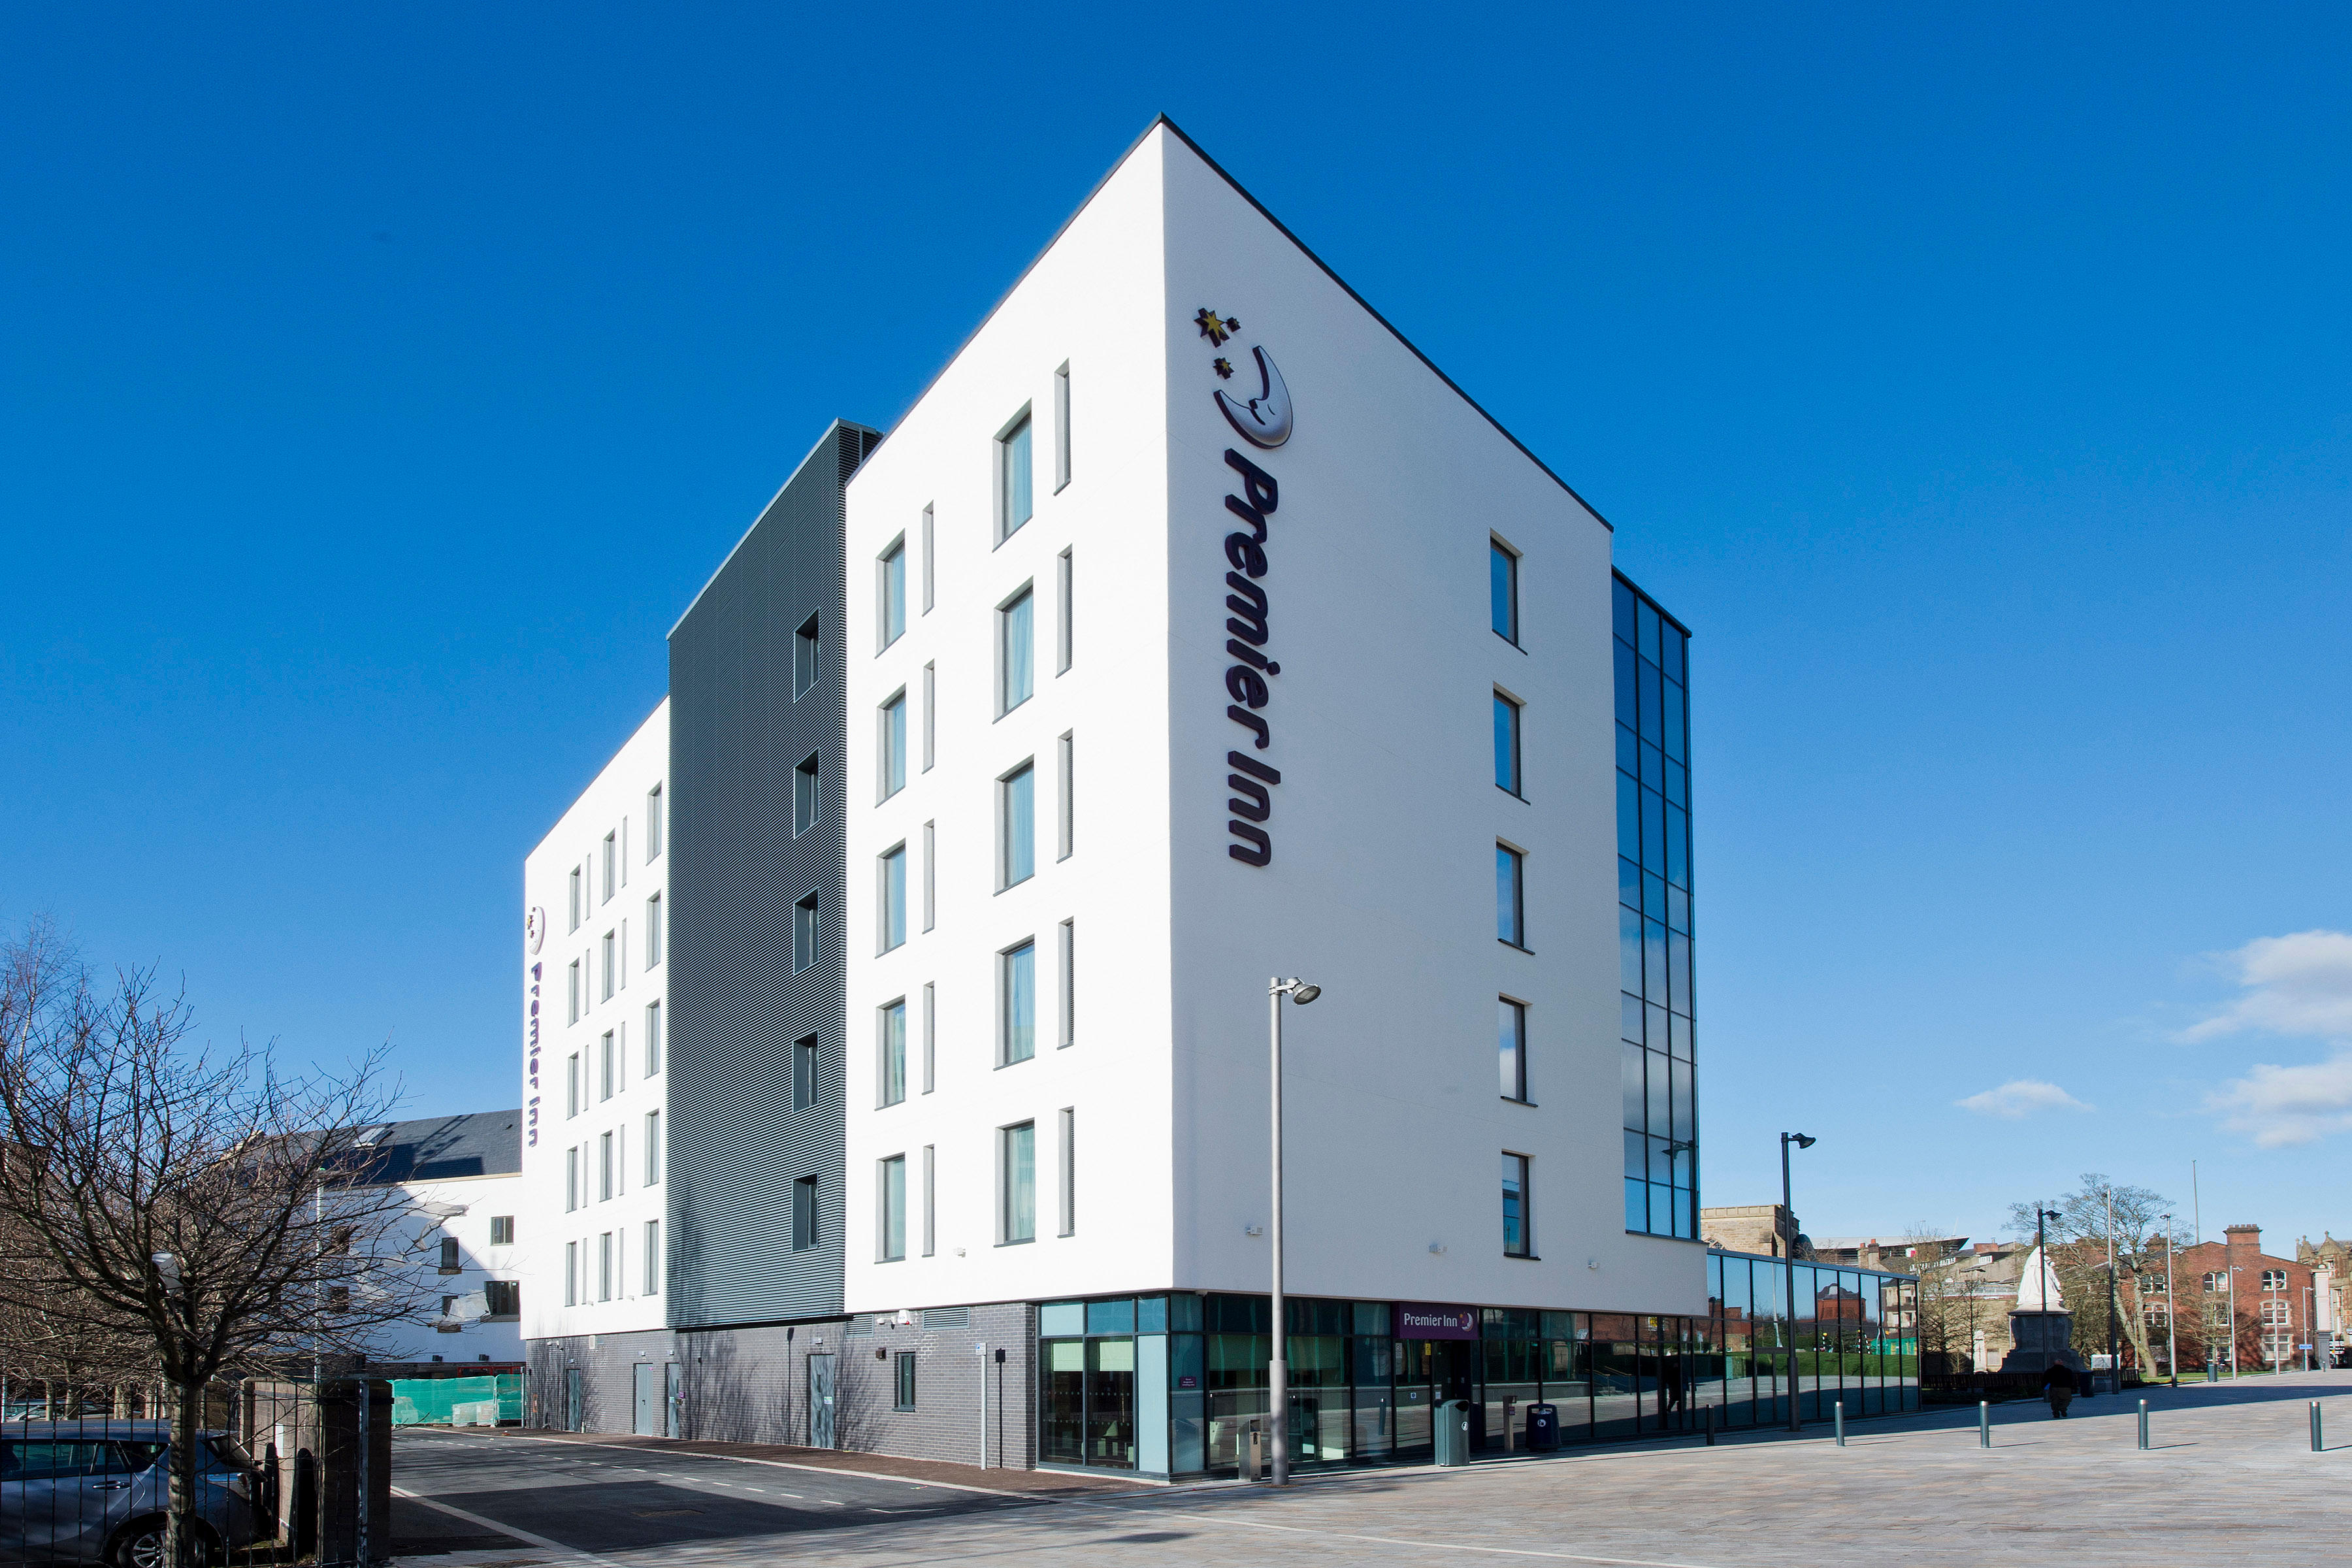 Blackburn Town Centre Premier Inn Blackburn Town Centre hotel Blackburn 03333 213081